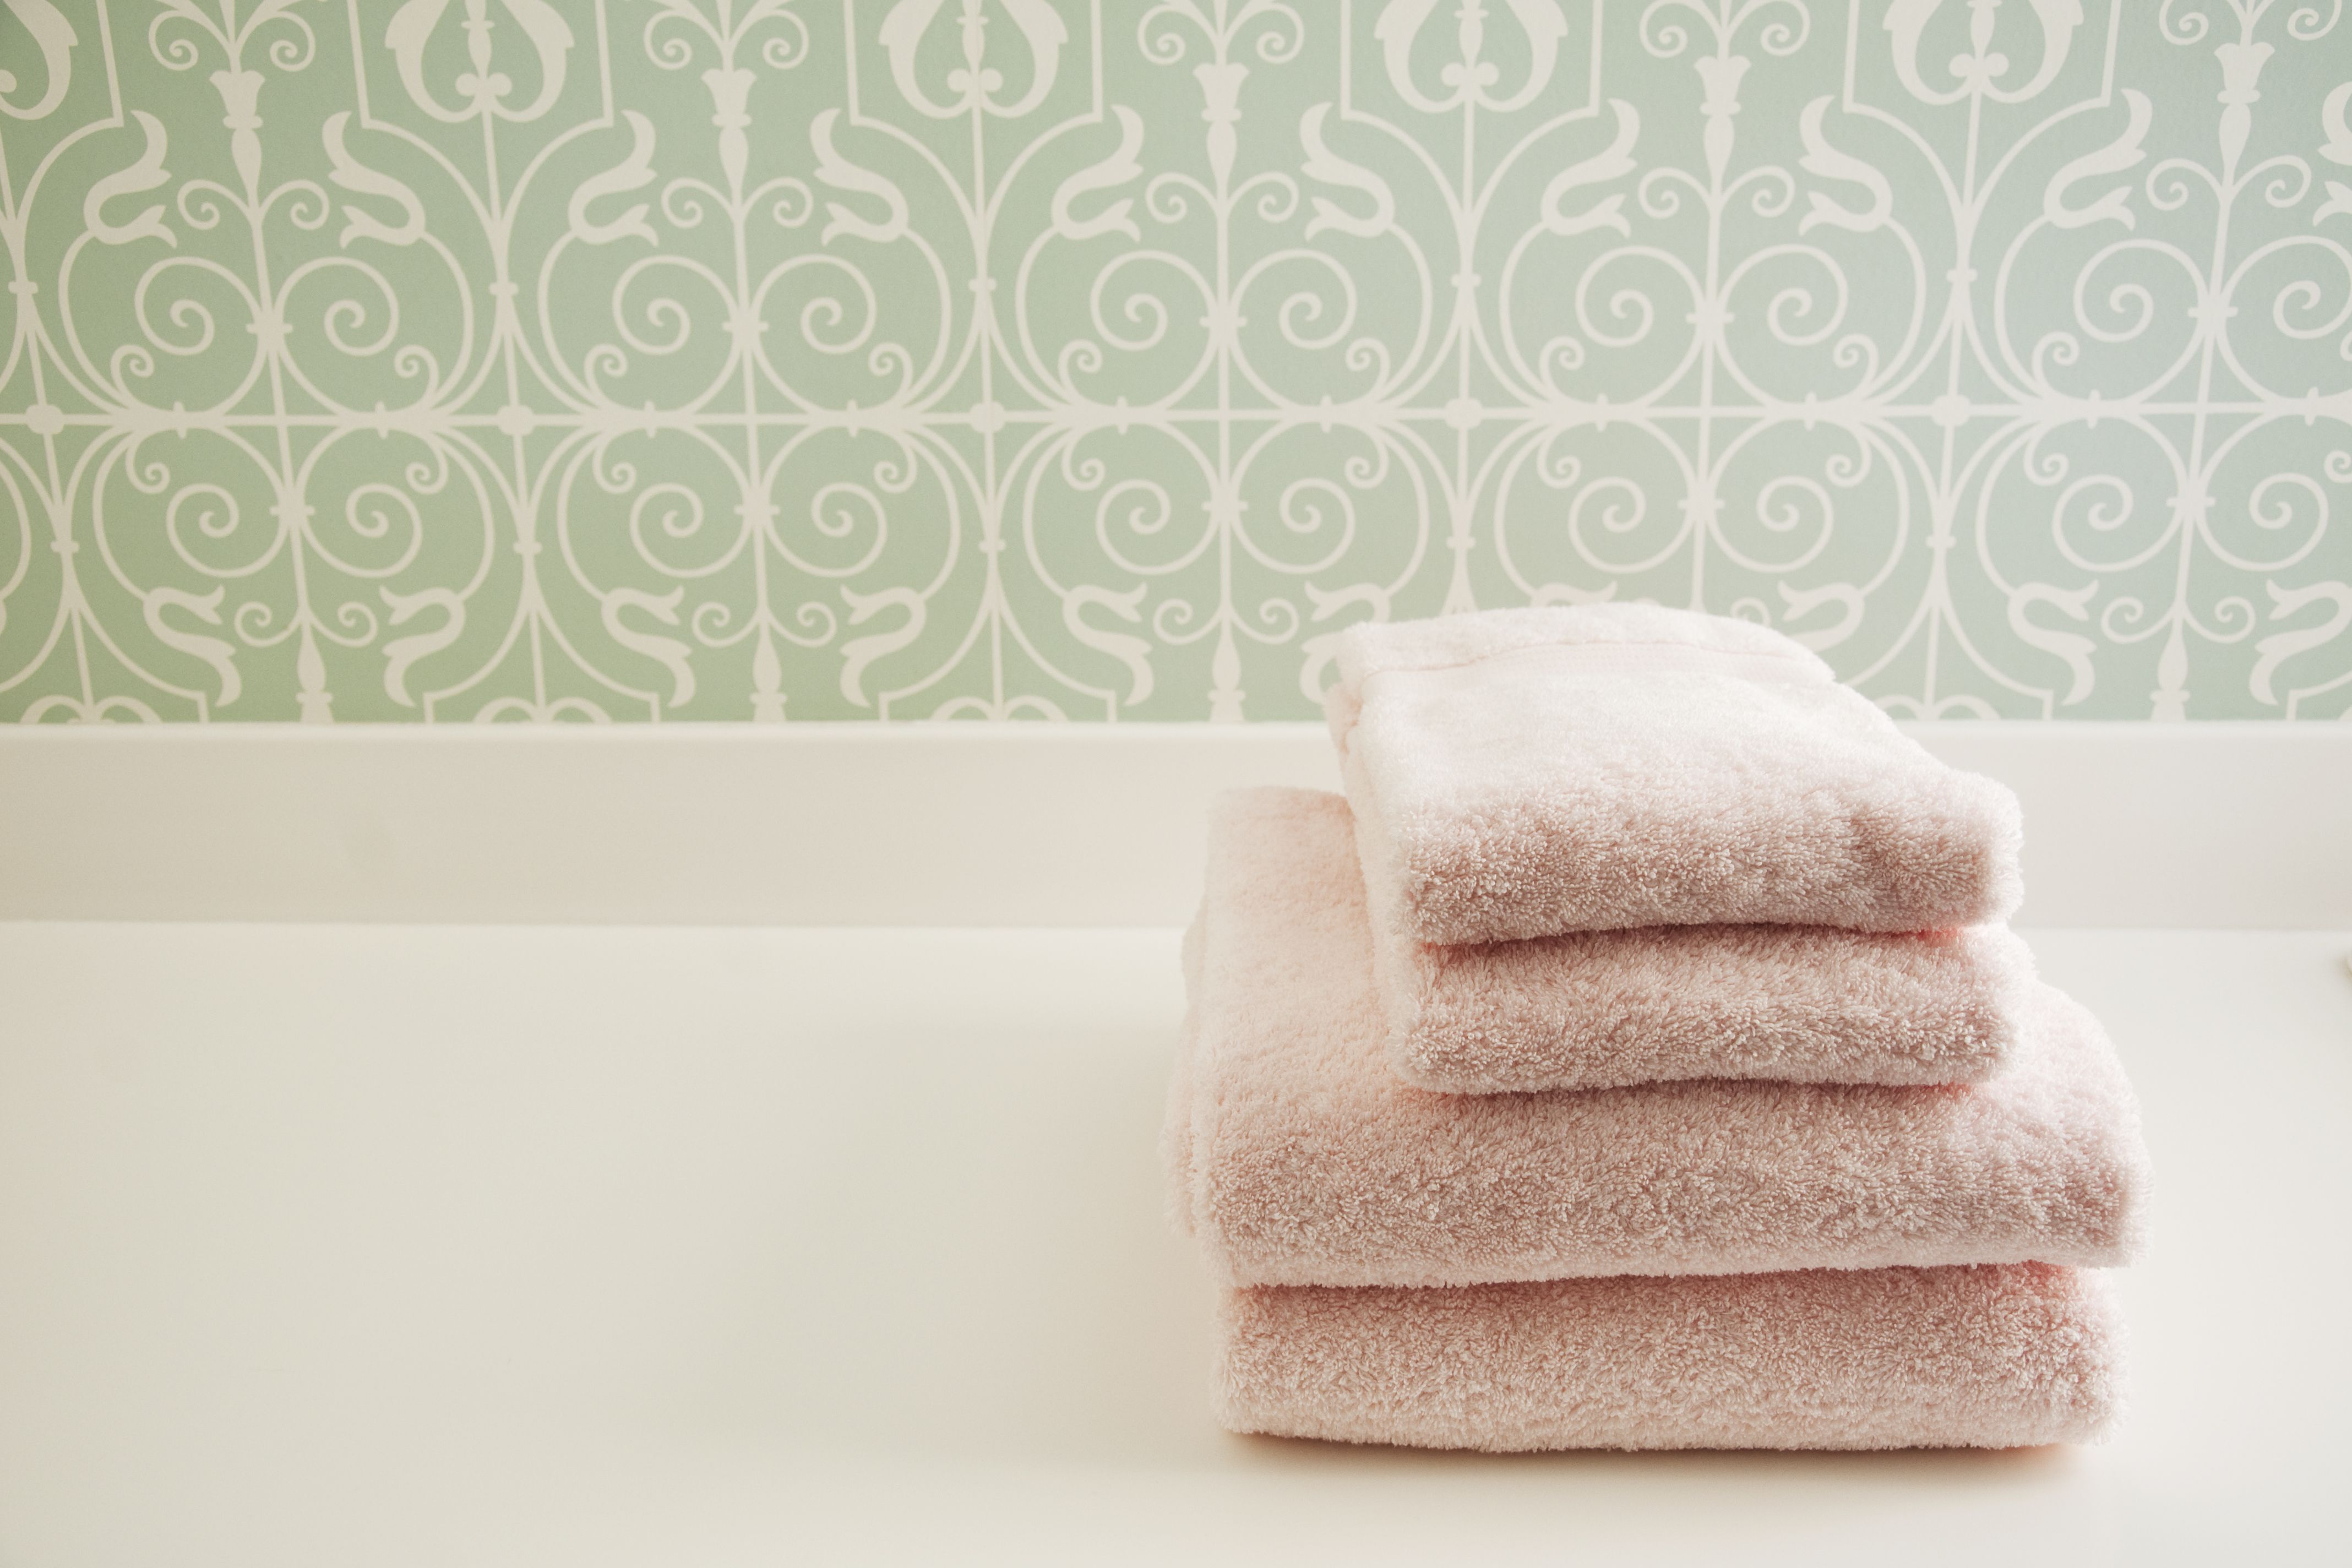 Caring For Towels Towel Washing Towels Soft Towels